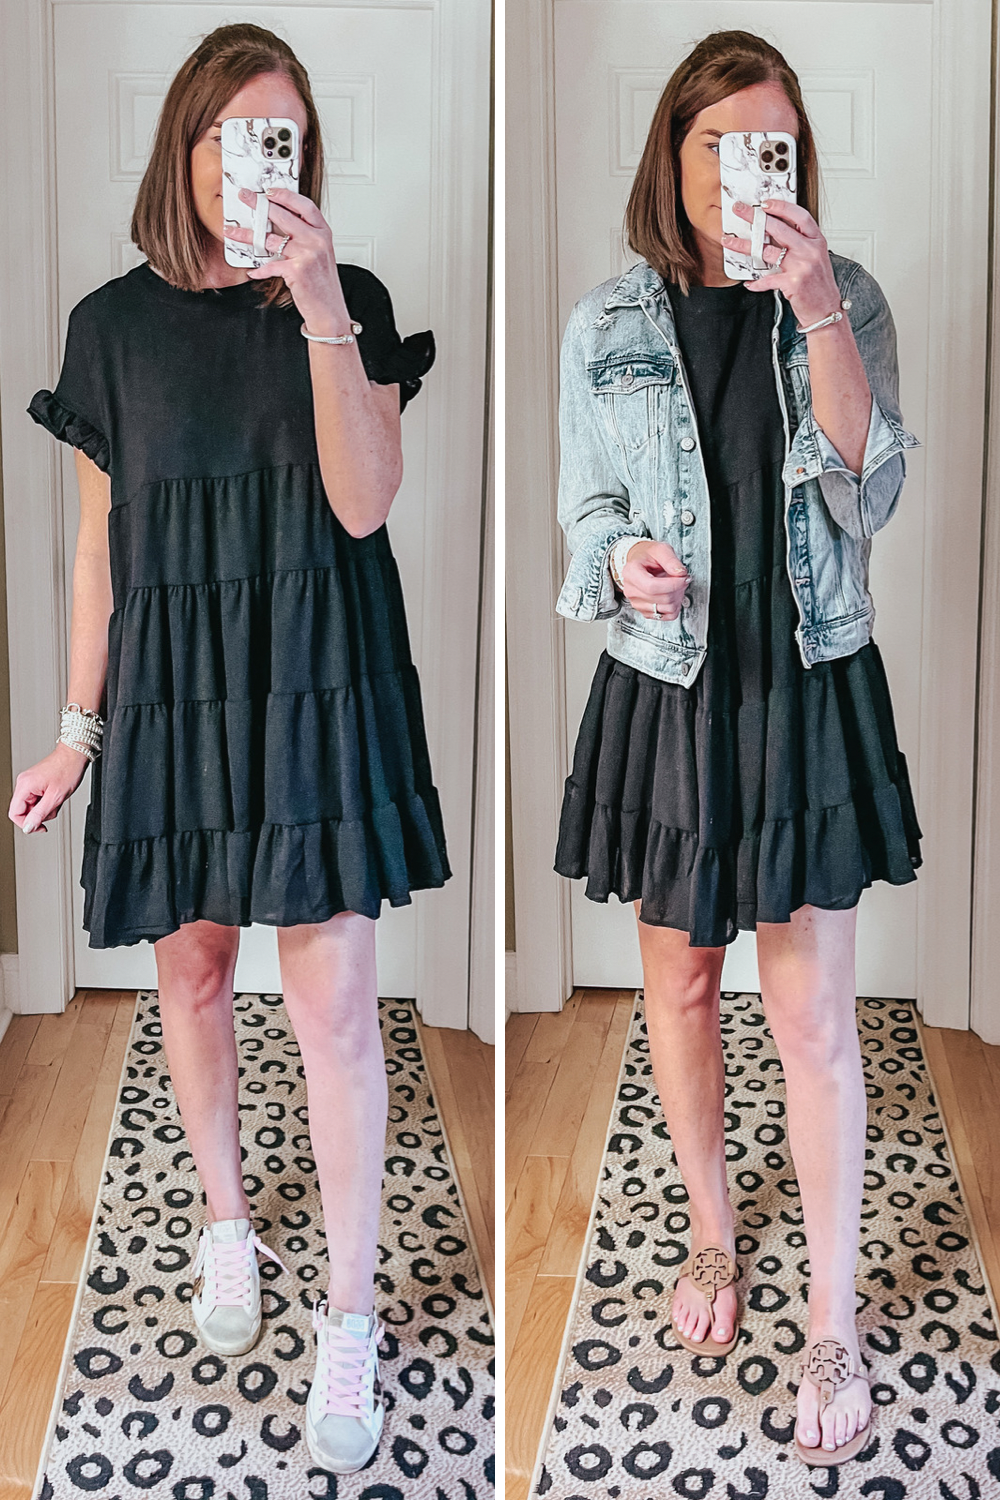 Amazon dresses, black ruffle tiered mini dress, Spring and Summer Dresses Under $35, wedding guest dress